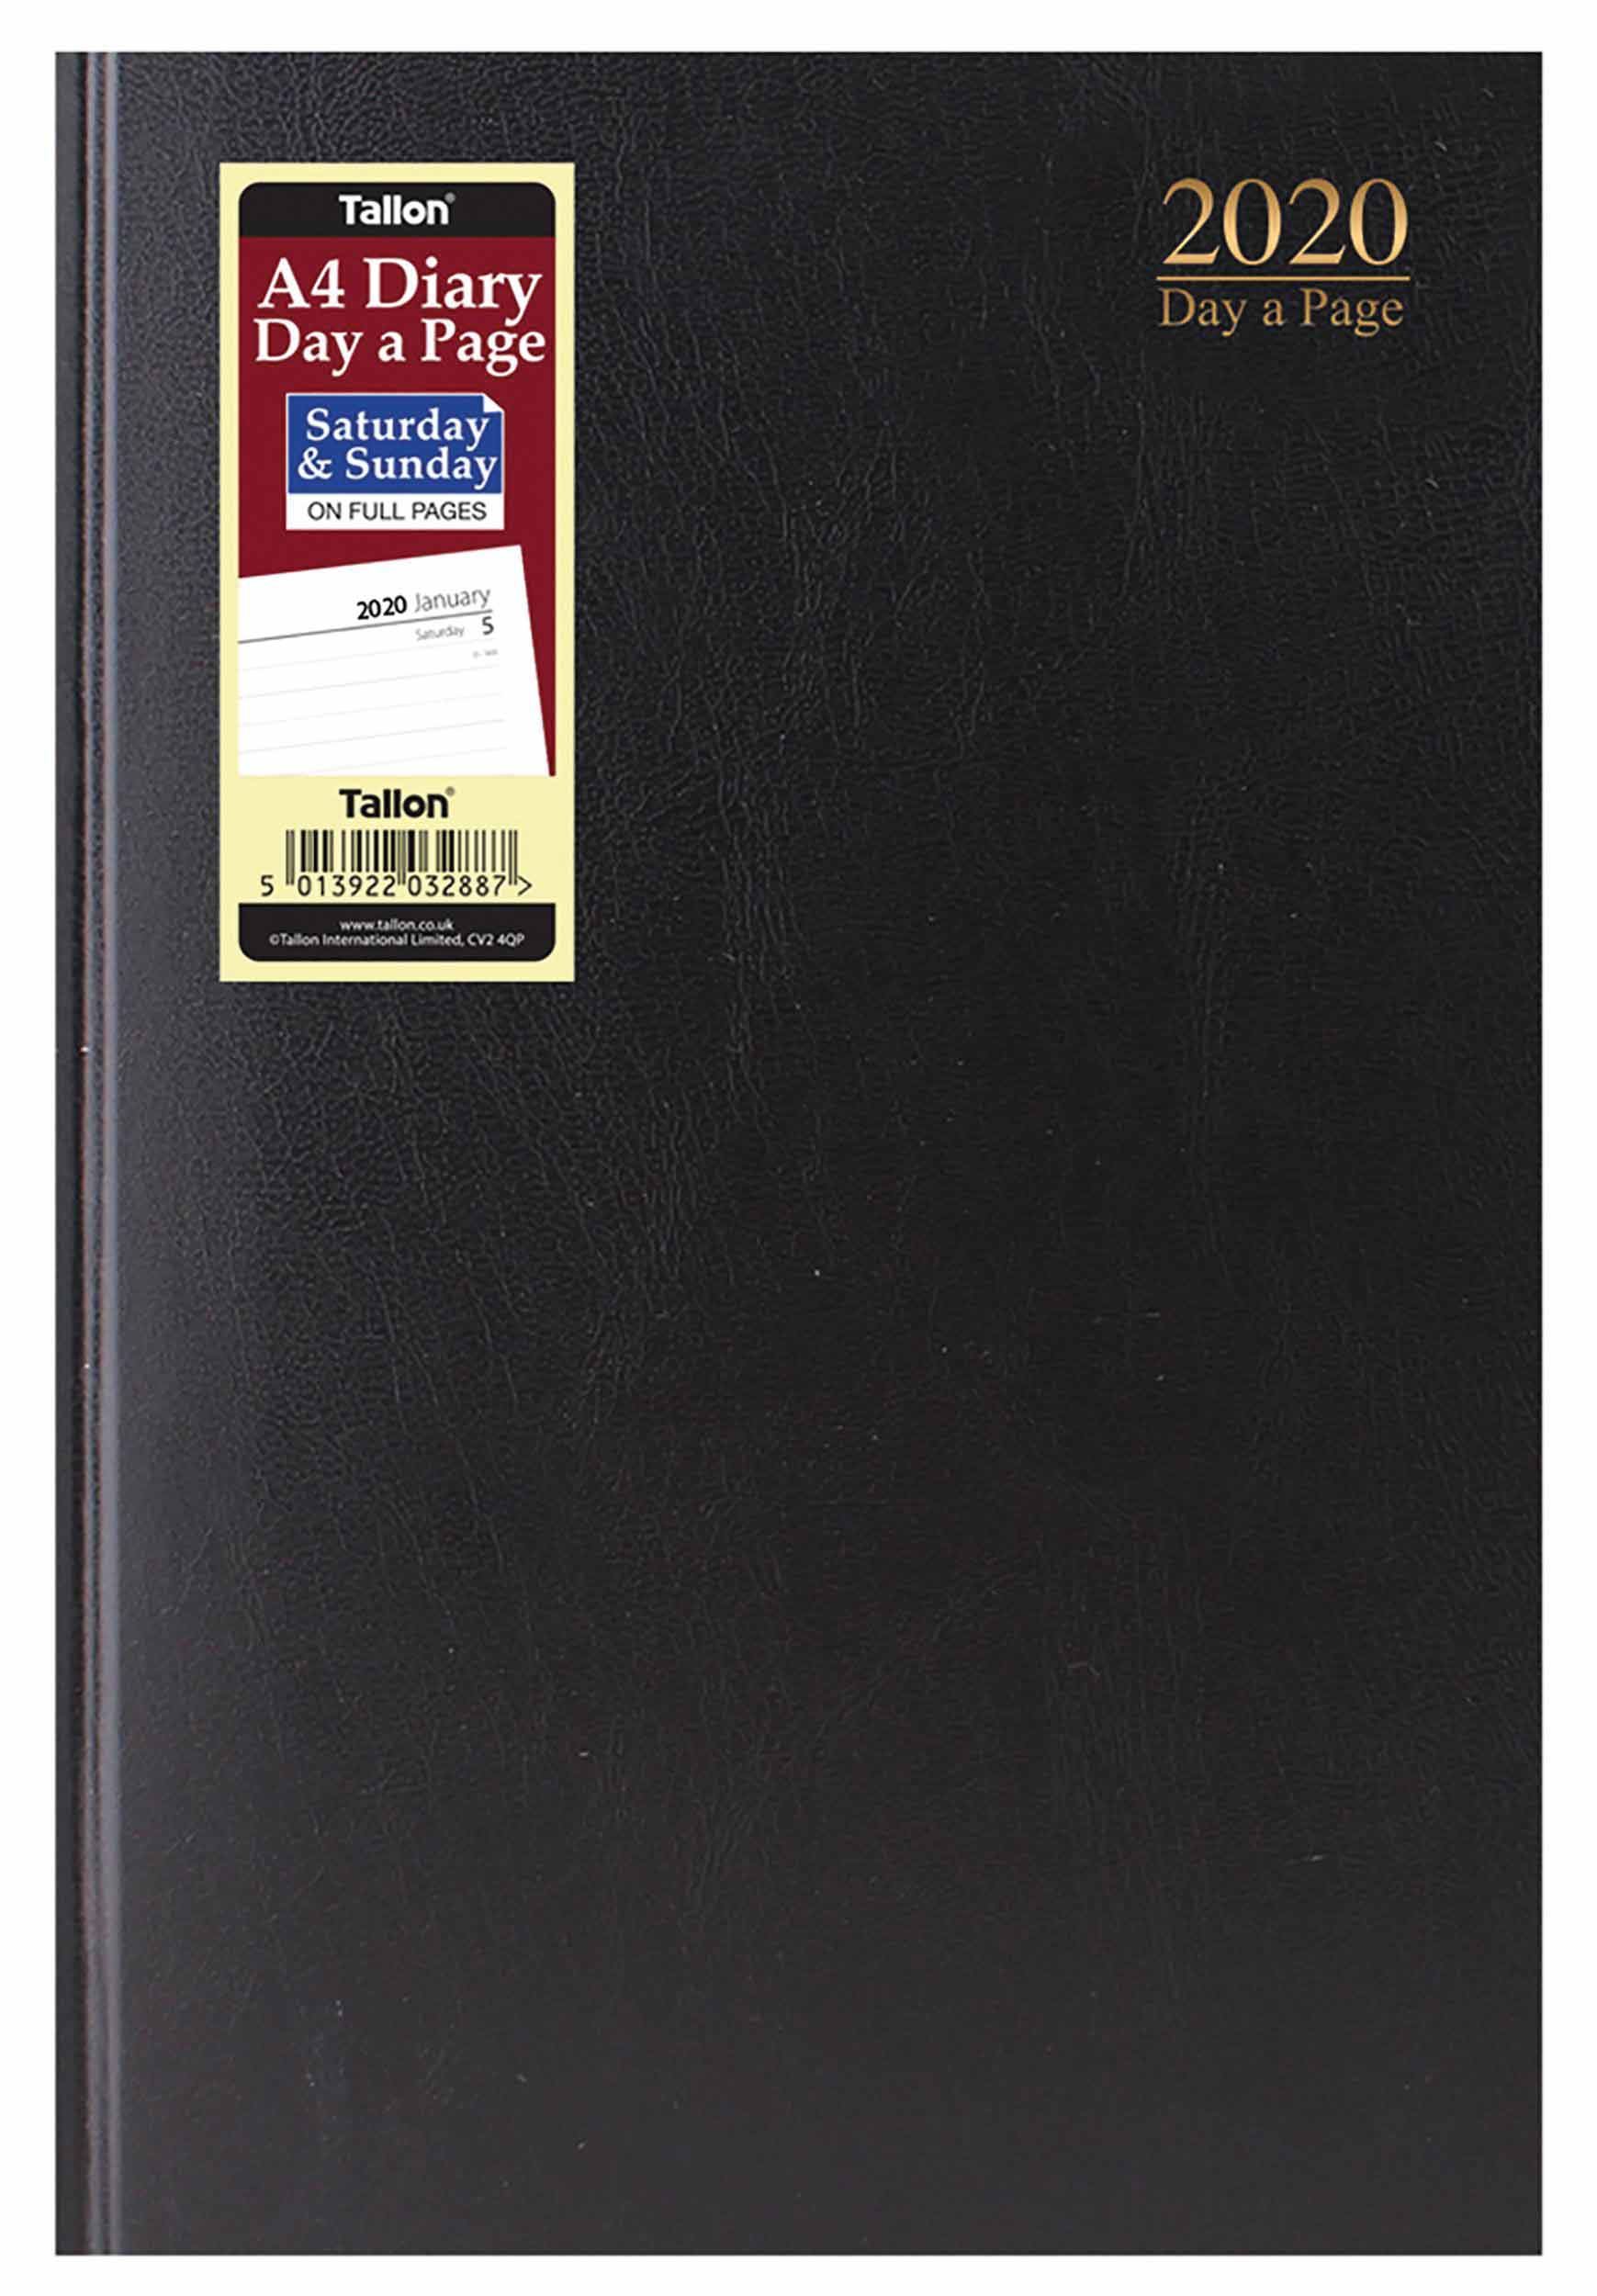 Black Hardback Page-A-Day A4 Diary With Full Weekend 2020